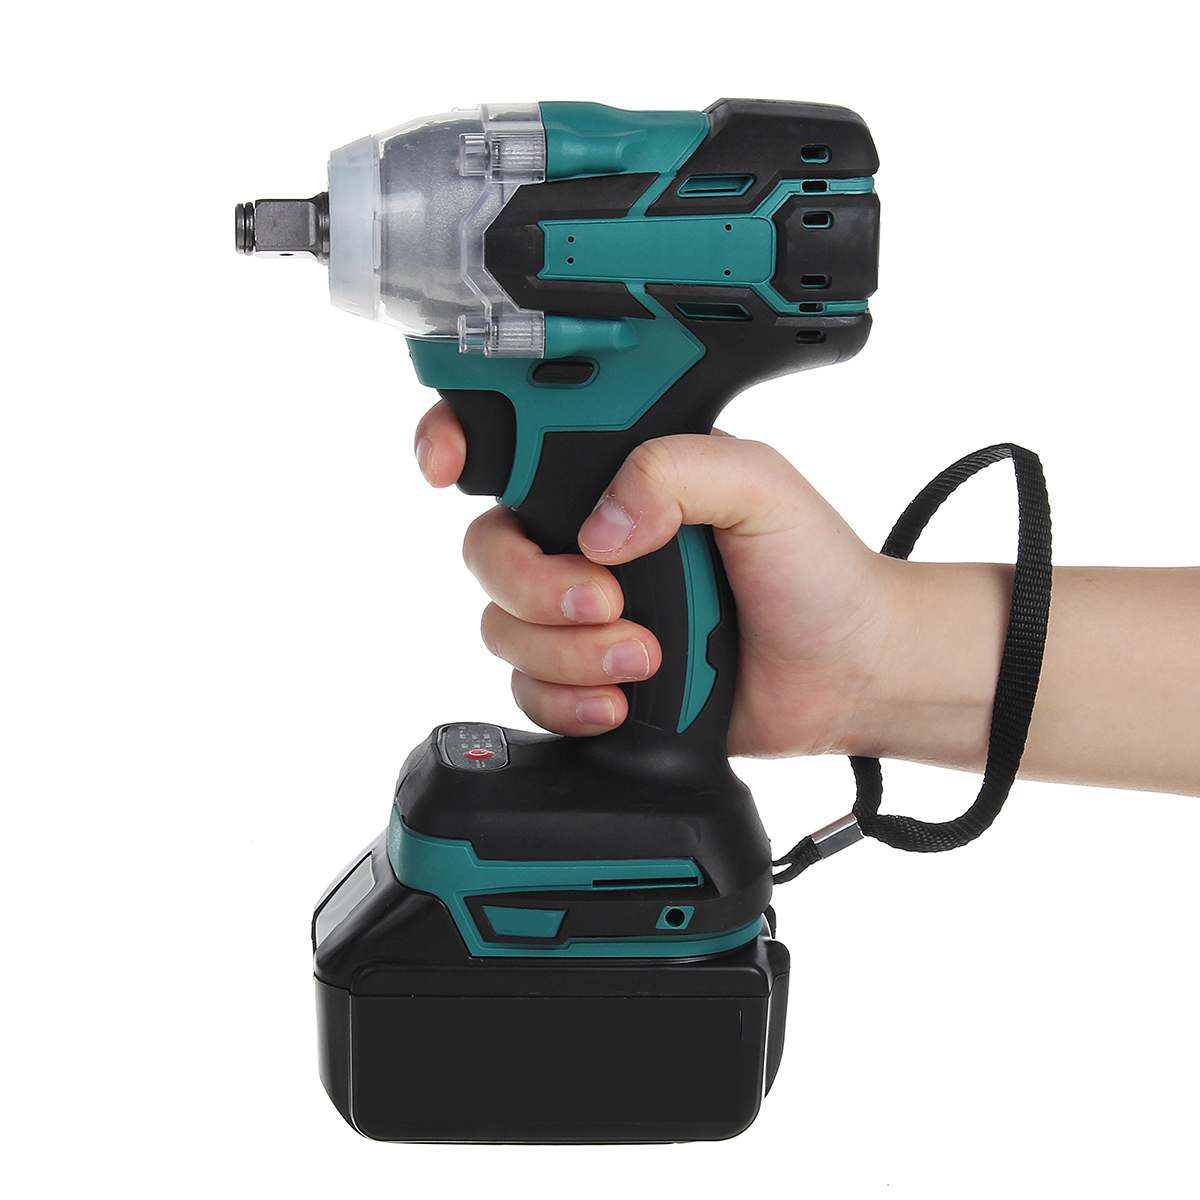 NEW 110-240V 22800mAh 288VF Brushless Electric Impact Wrench 1/2 Lithium-Ion Battery 6200rpm 800 N.M Torque